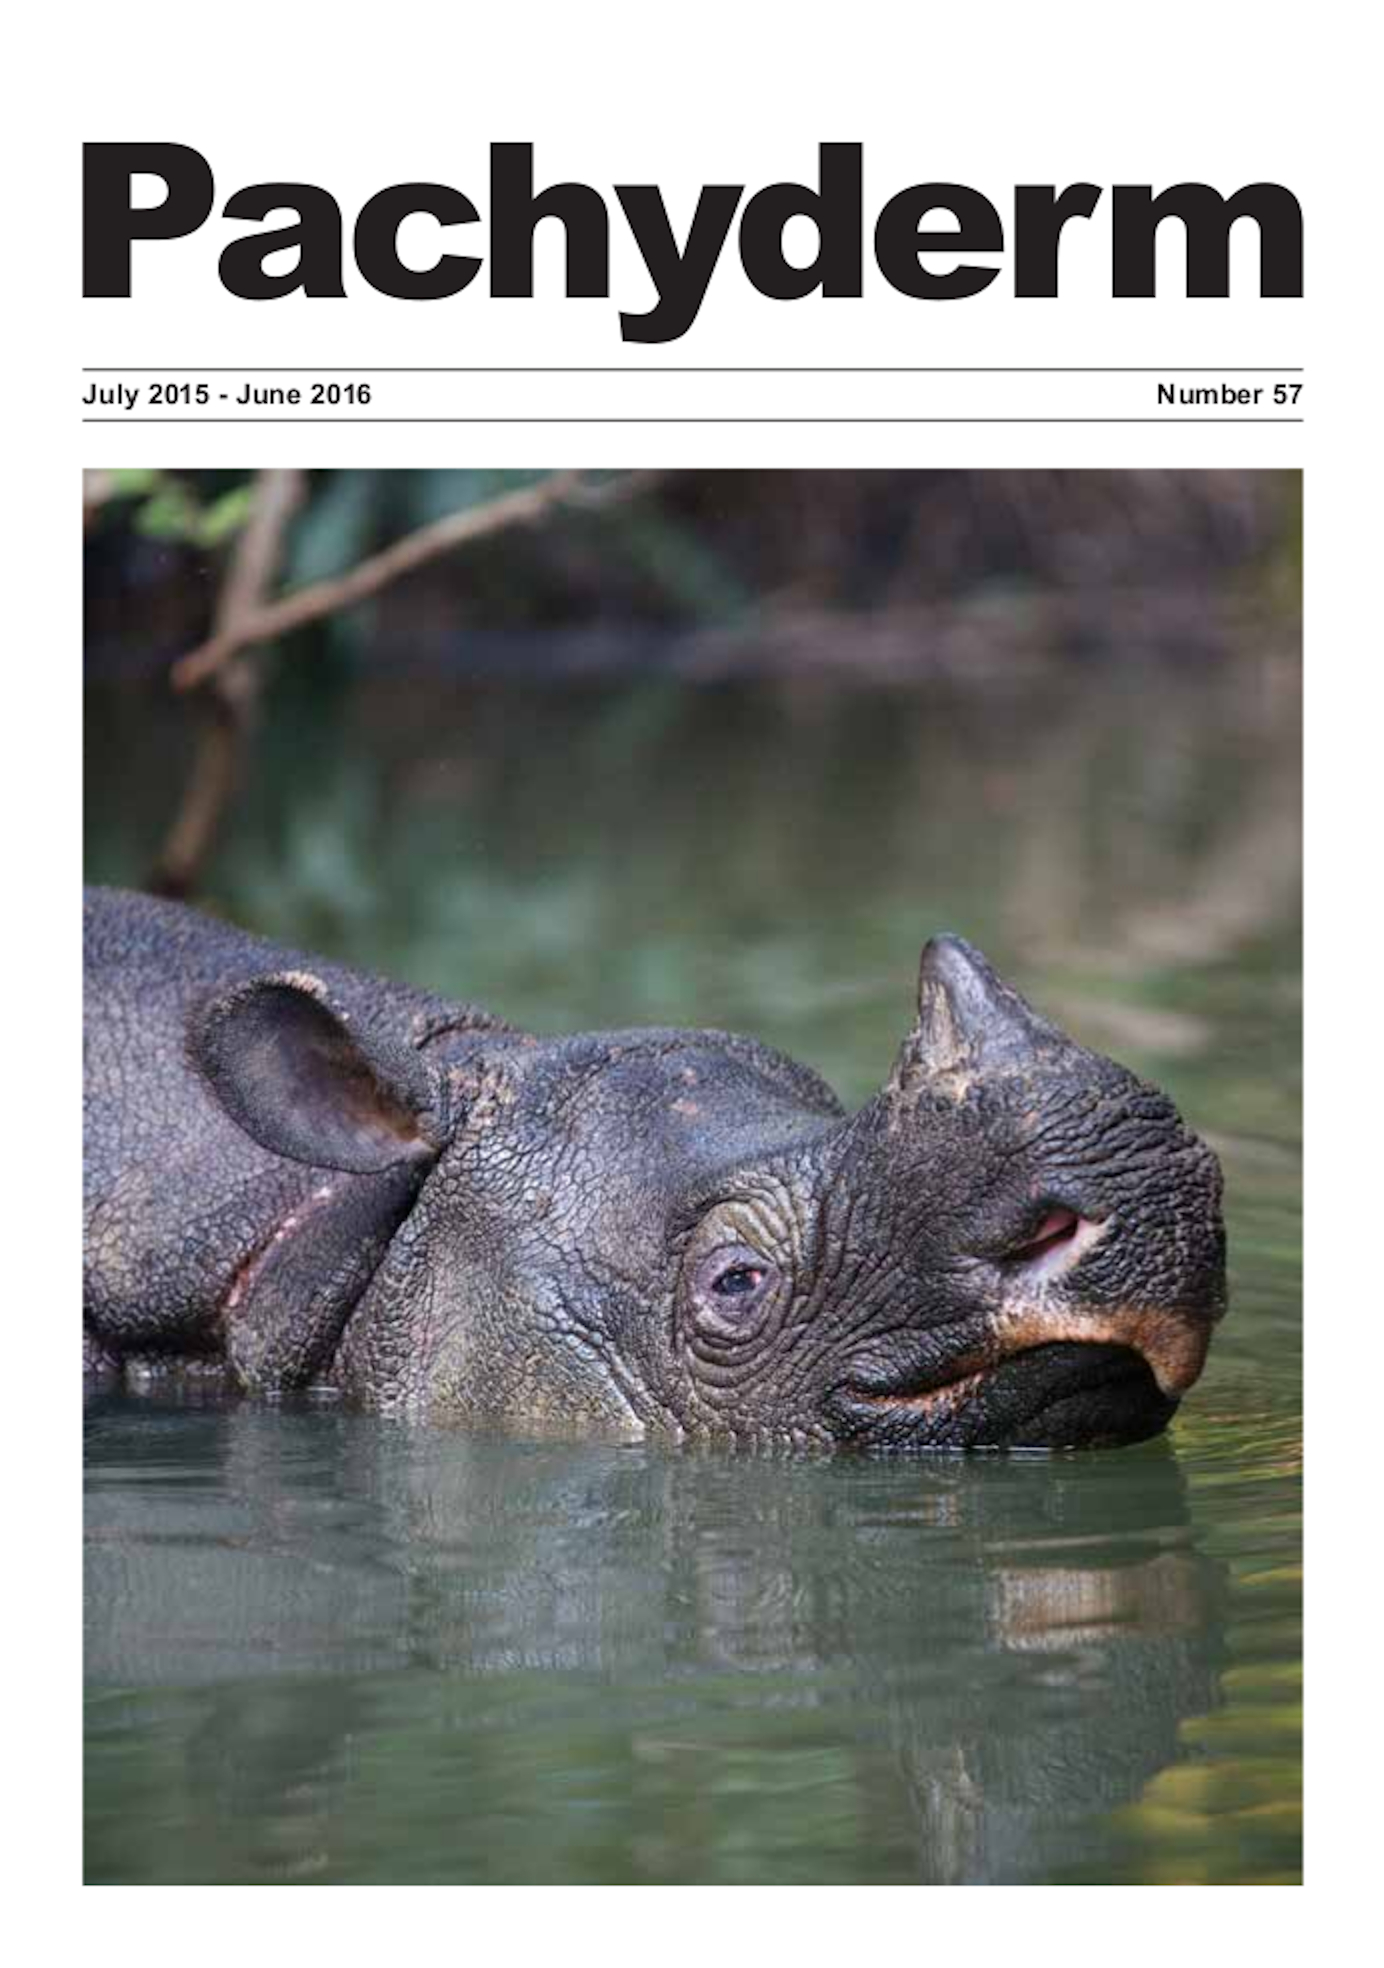 "Cover caption: Javan Rhino Ujung Kulon National Park (UKNP): The Javan rhinos live in impenetrable jungle, which makes it very difficult to see them, and as they are solitary and reclusive it makes photographing them even more difficult. It took 28 porters and hours of trekking to reach UKNP. Stephen Belcher describes the experience, his biggest challenge to date: ""My most successful method of capturing Javan rhino on camera was using a small inflatable canoe to quietly move down the rivers. This paid off with the image used on the front cover. It was above 30°C during the time I was photographing and a large insect was biting my right arm, which I couldn't swat off as any movement might have disturbed the rhino"". © Stephen Belcher 2014"